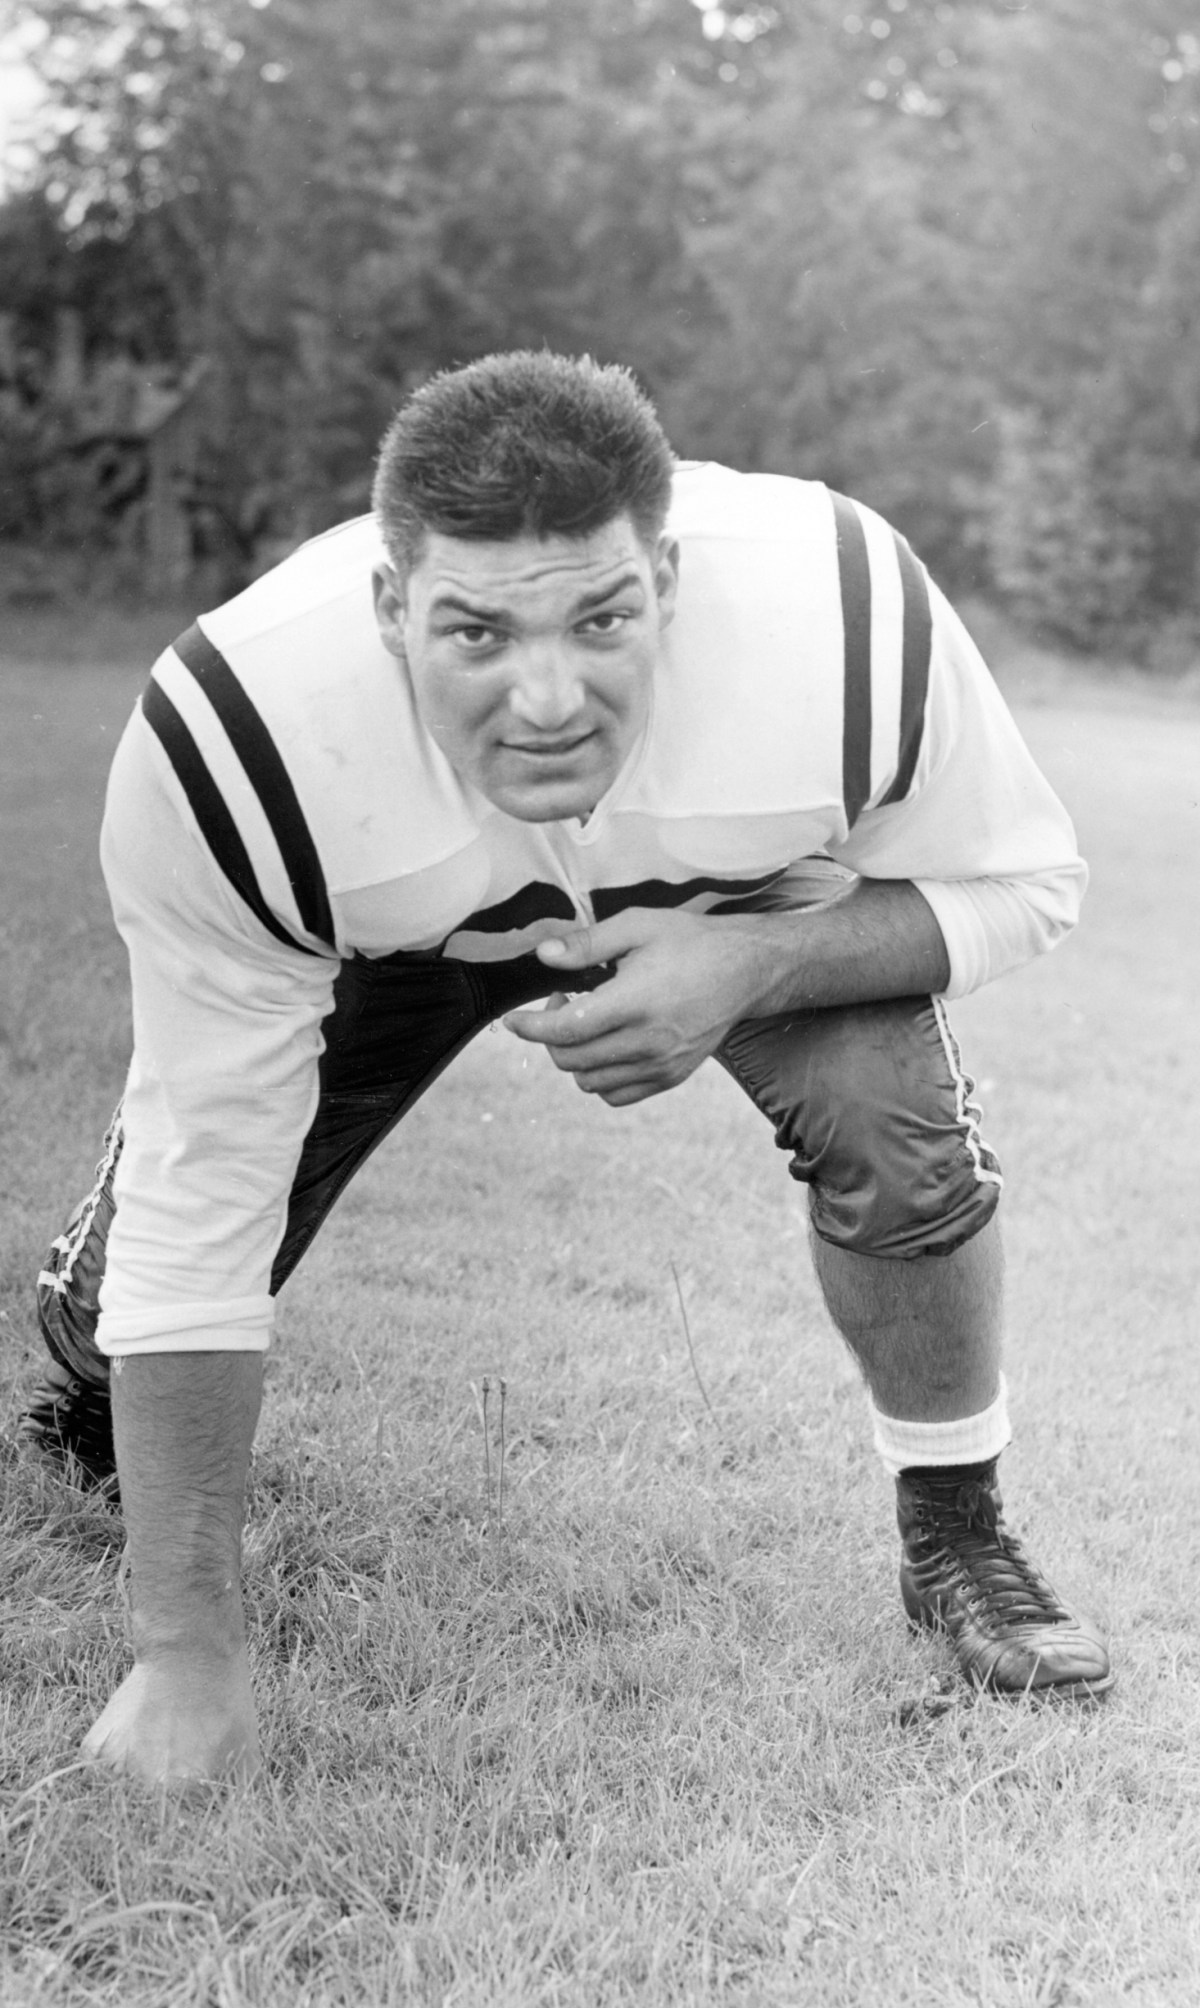 Vince Promuto, a former offensive guard for the College of the Holy Cross and the Washington Football Team